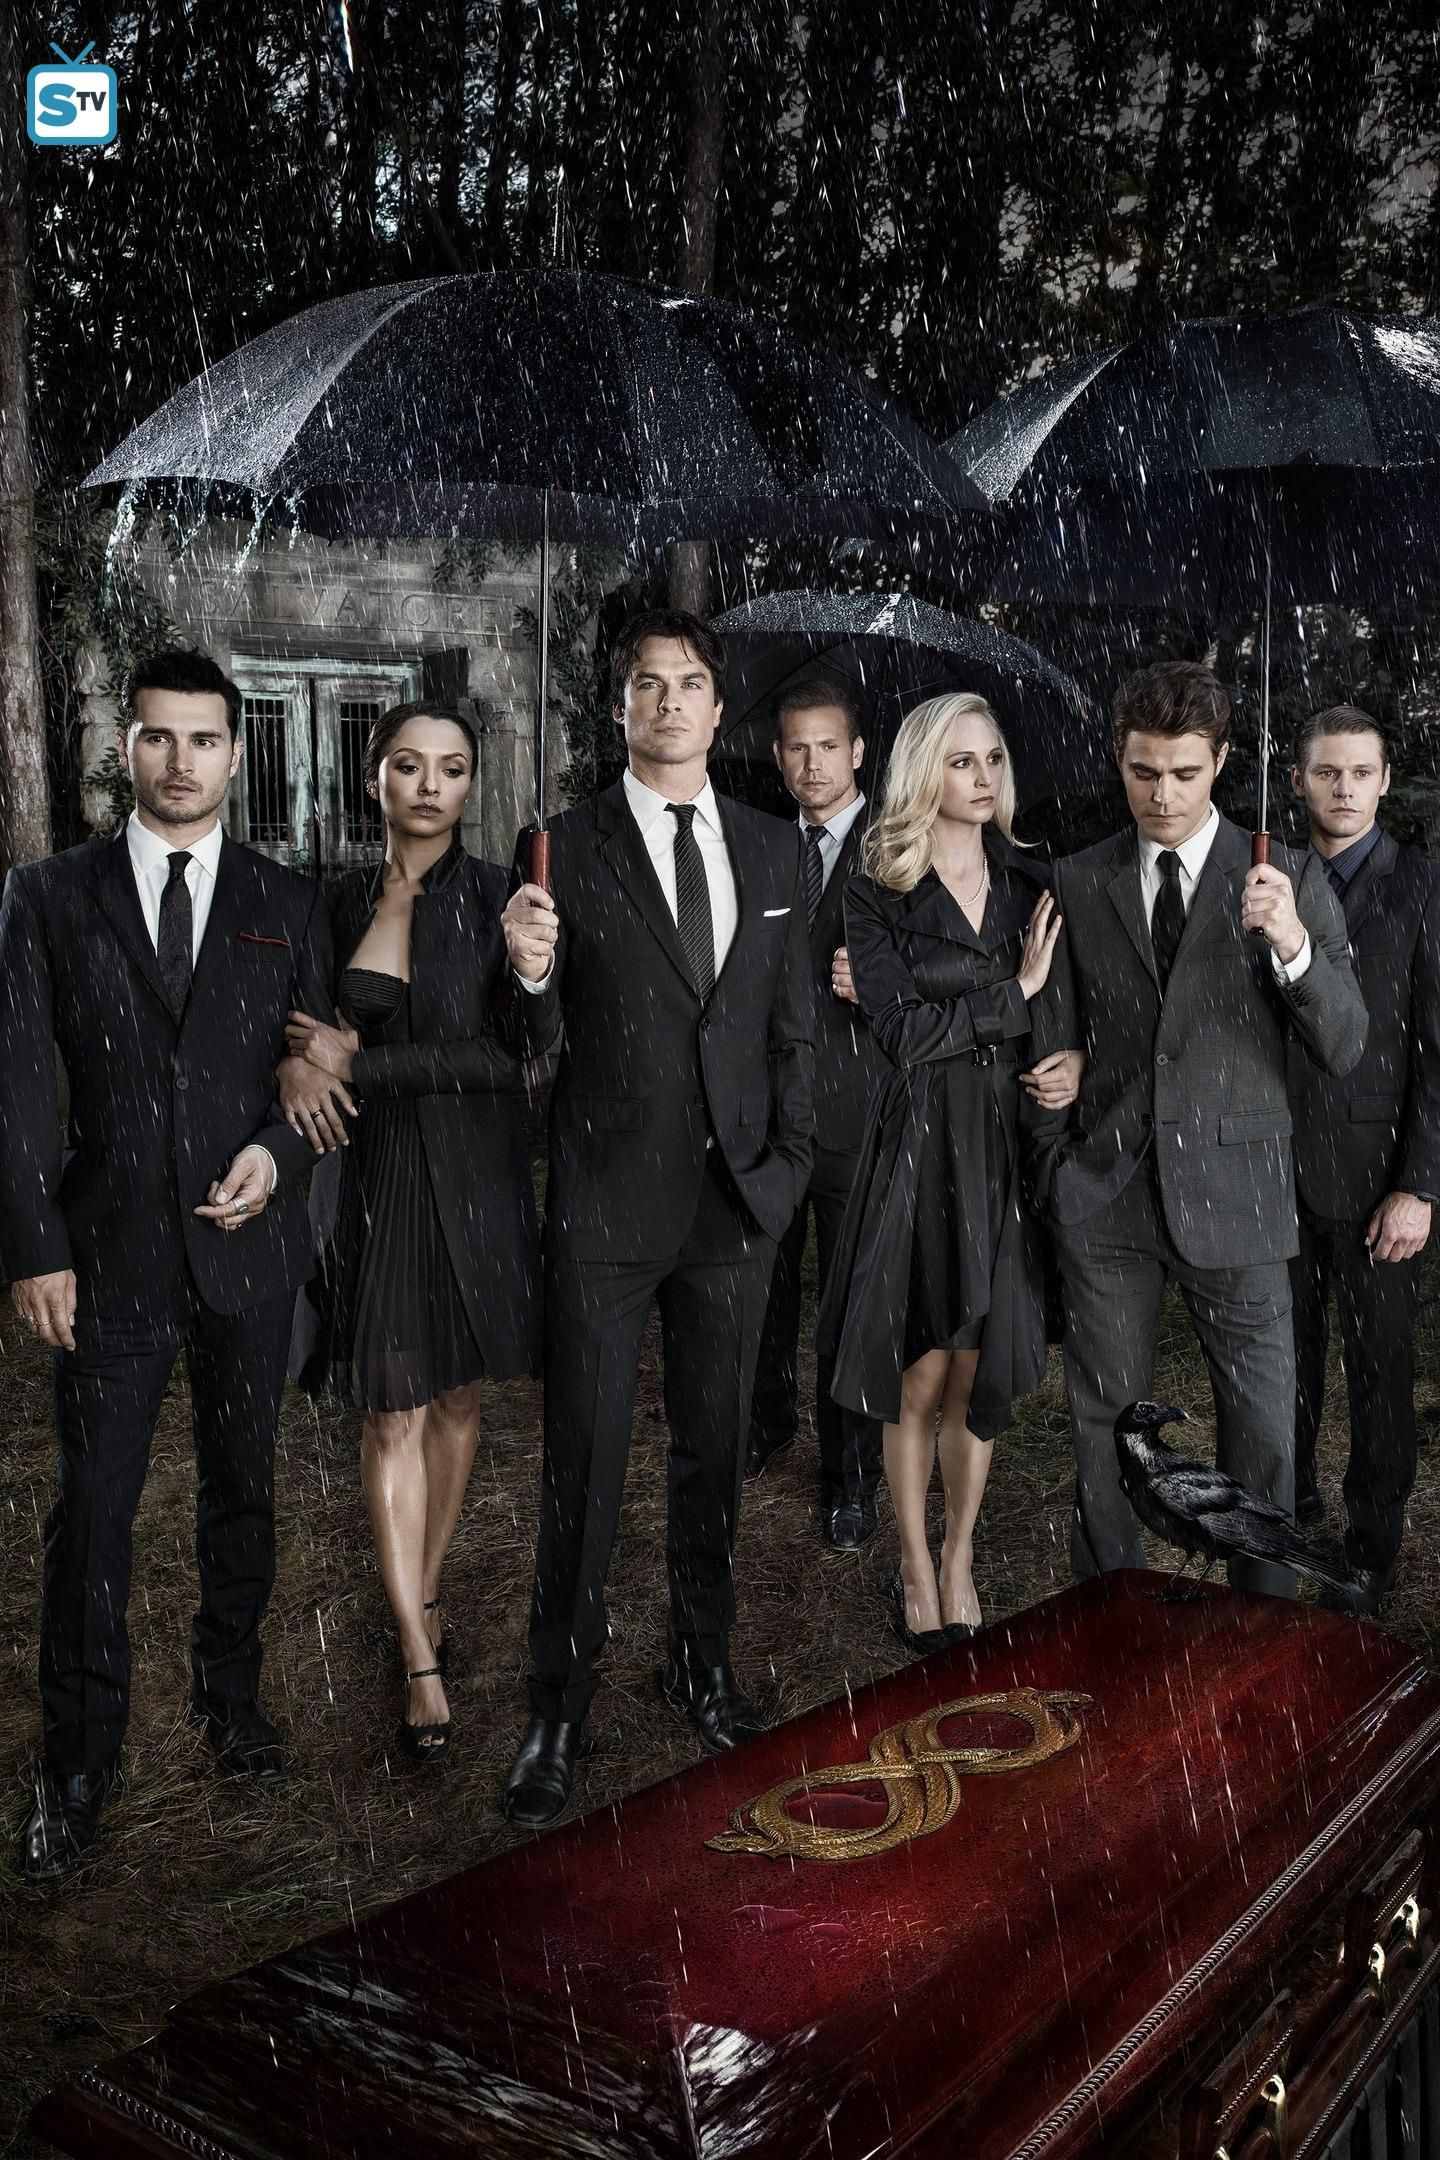 Cast Promotional Photos (8).jpg Vampire diaries, The